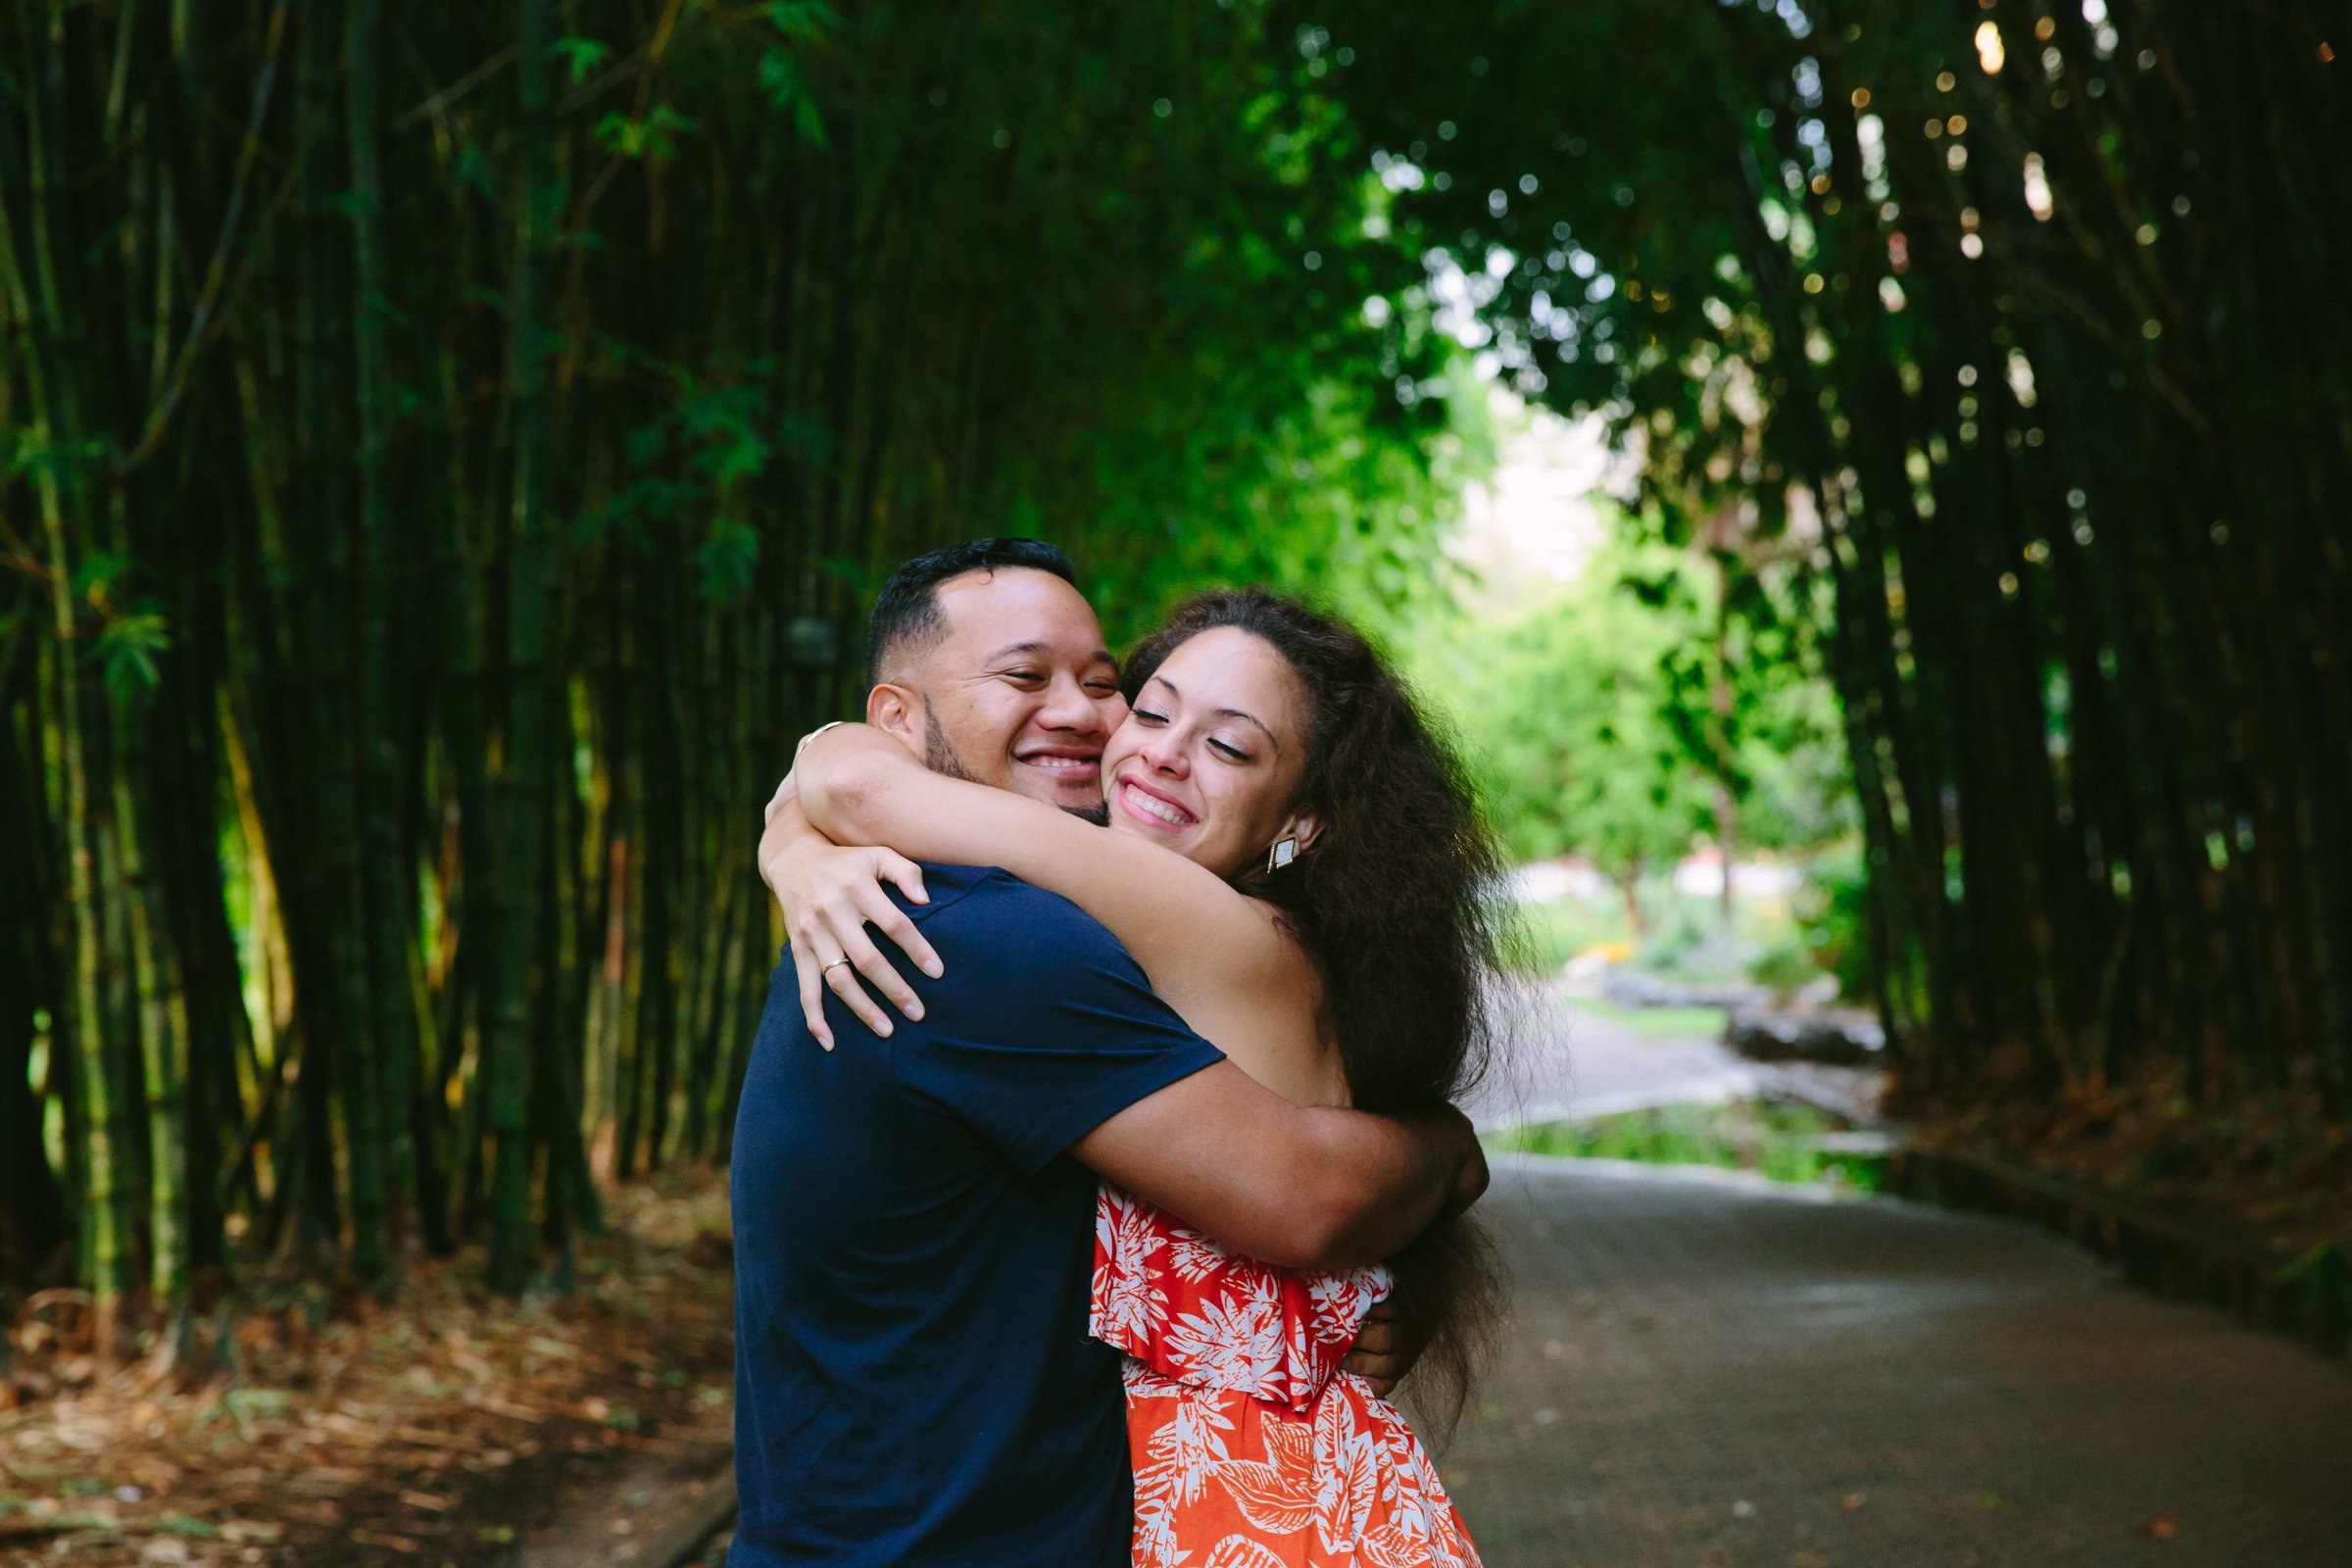 Afternoon Brisbane Botanical Gardens Proposal Photographer Anna Osetroff